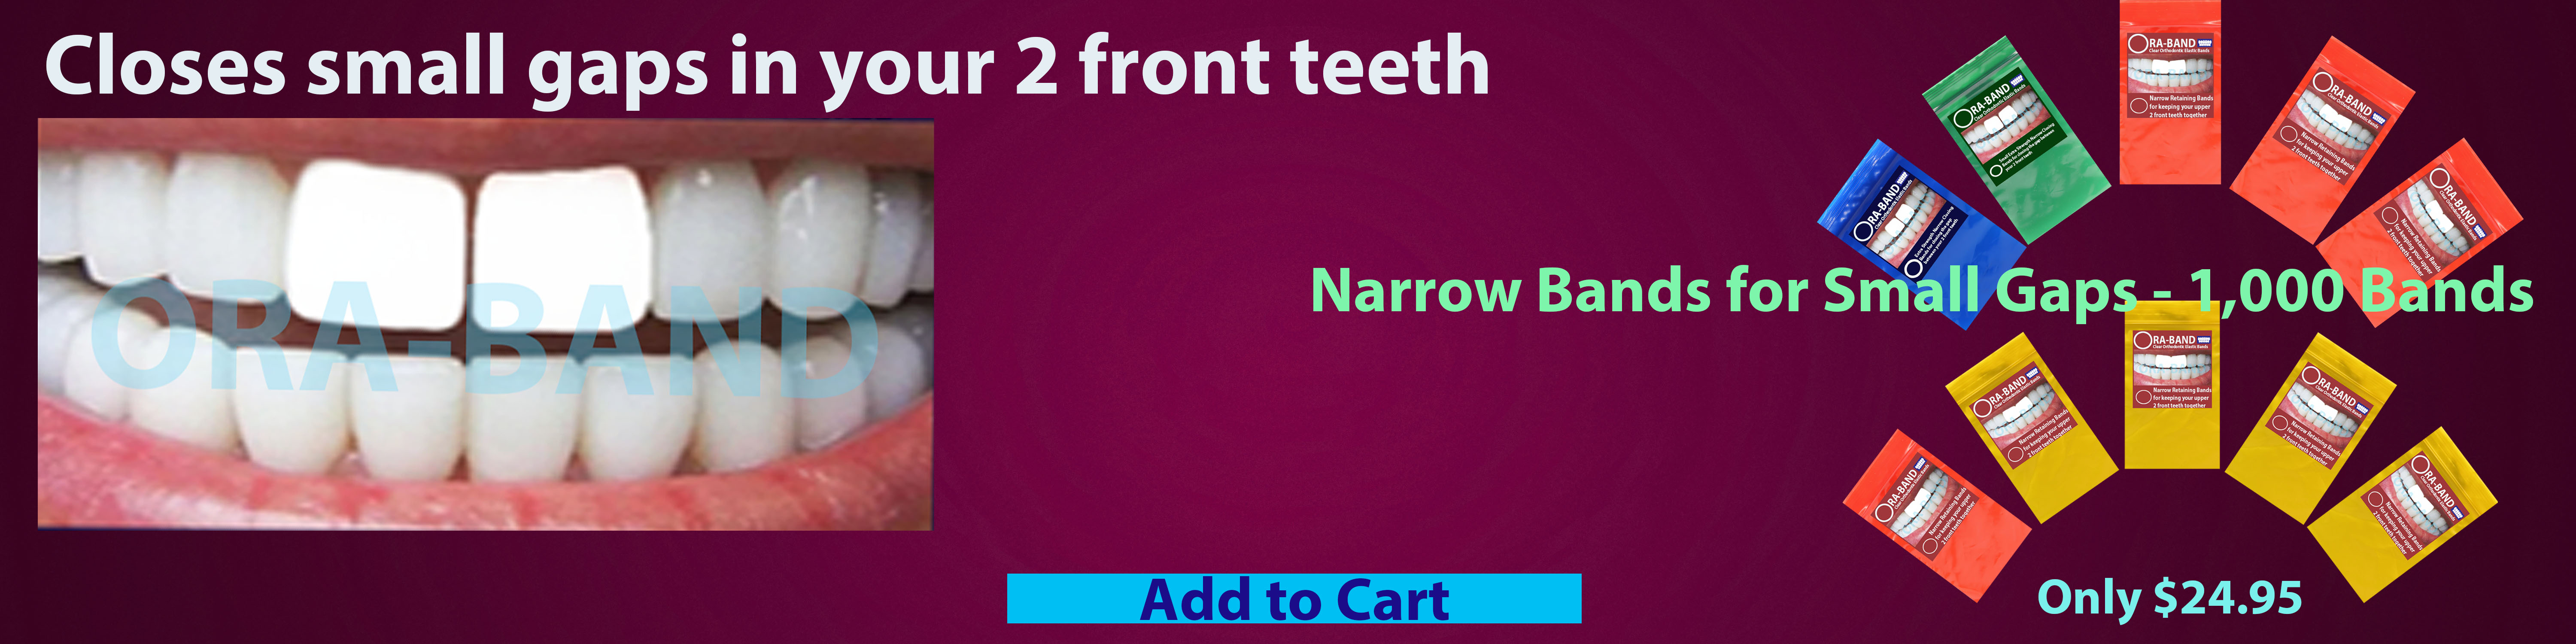 ORA-BAND 1,000 Band Narrow Bands Package for  Small Gaps between your 2 front teeth